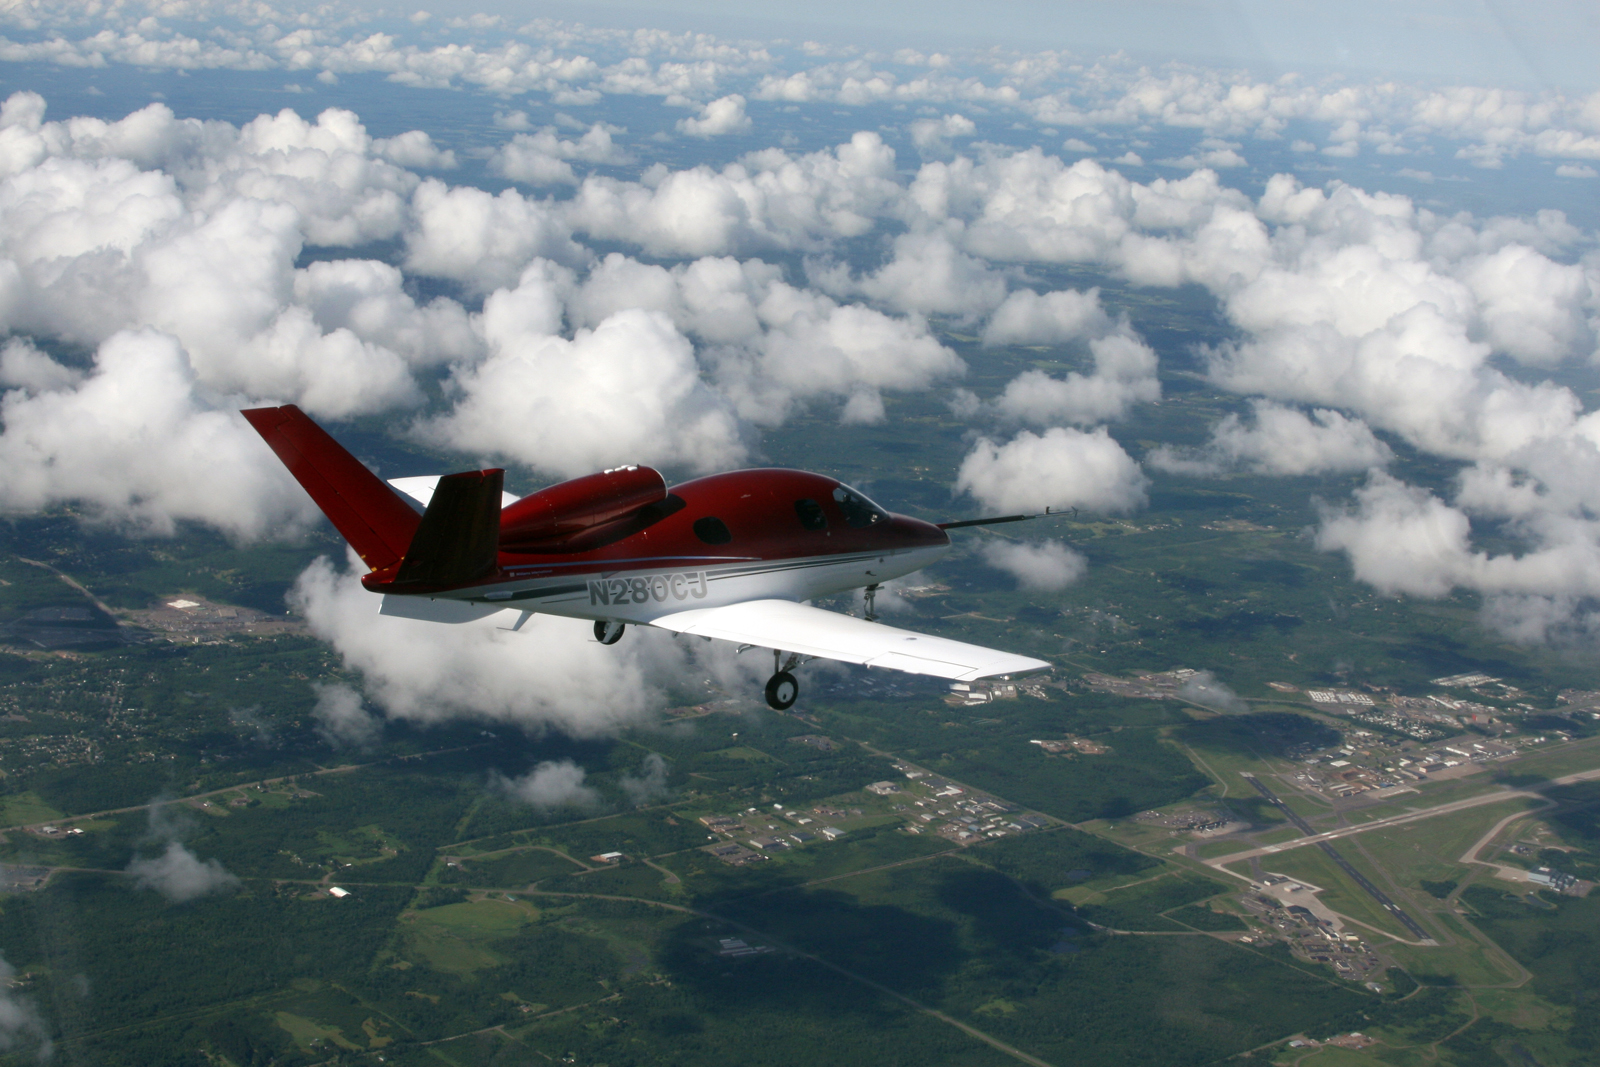 Cirrus Names its Jet 'Vision SJ50,' with SATSair as its First Air Taxi Customer